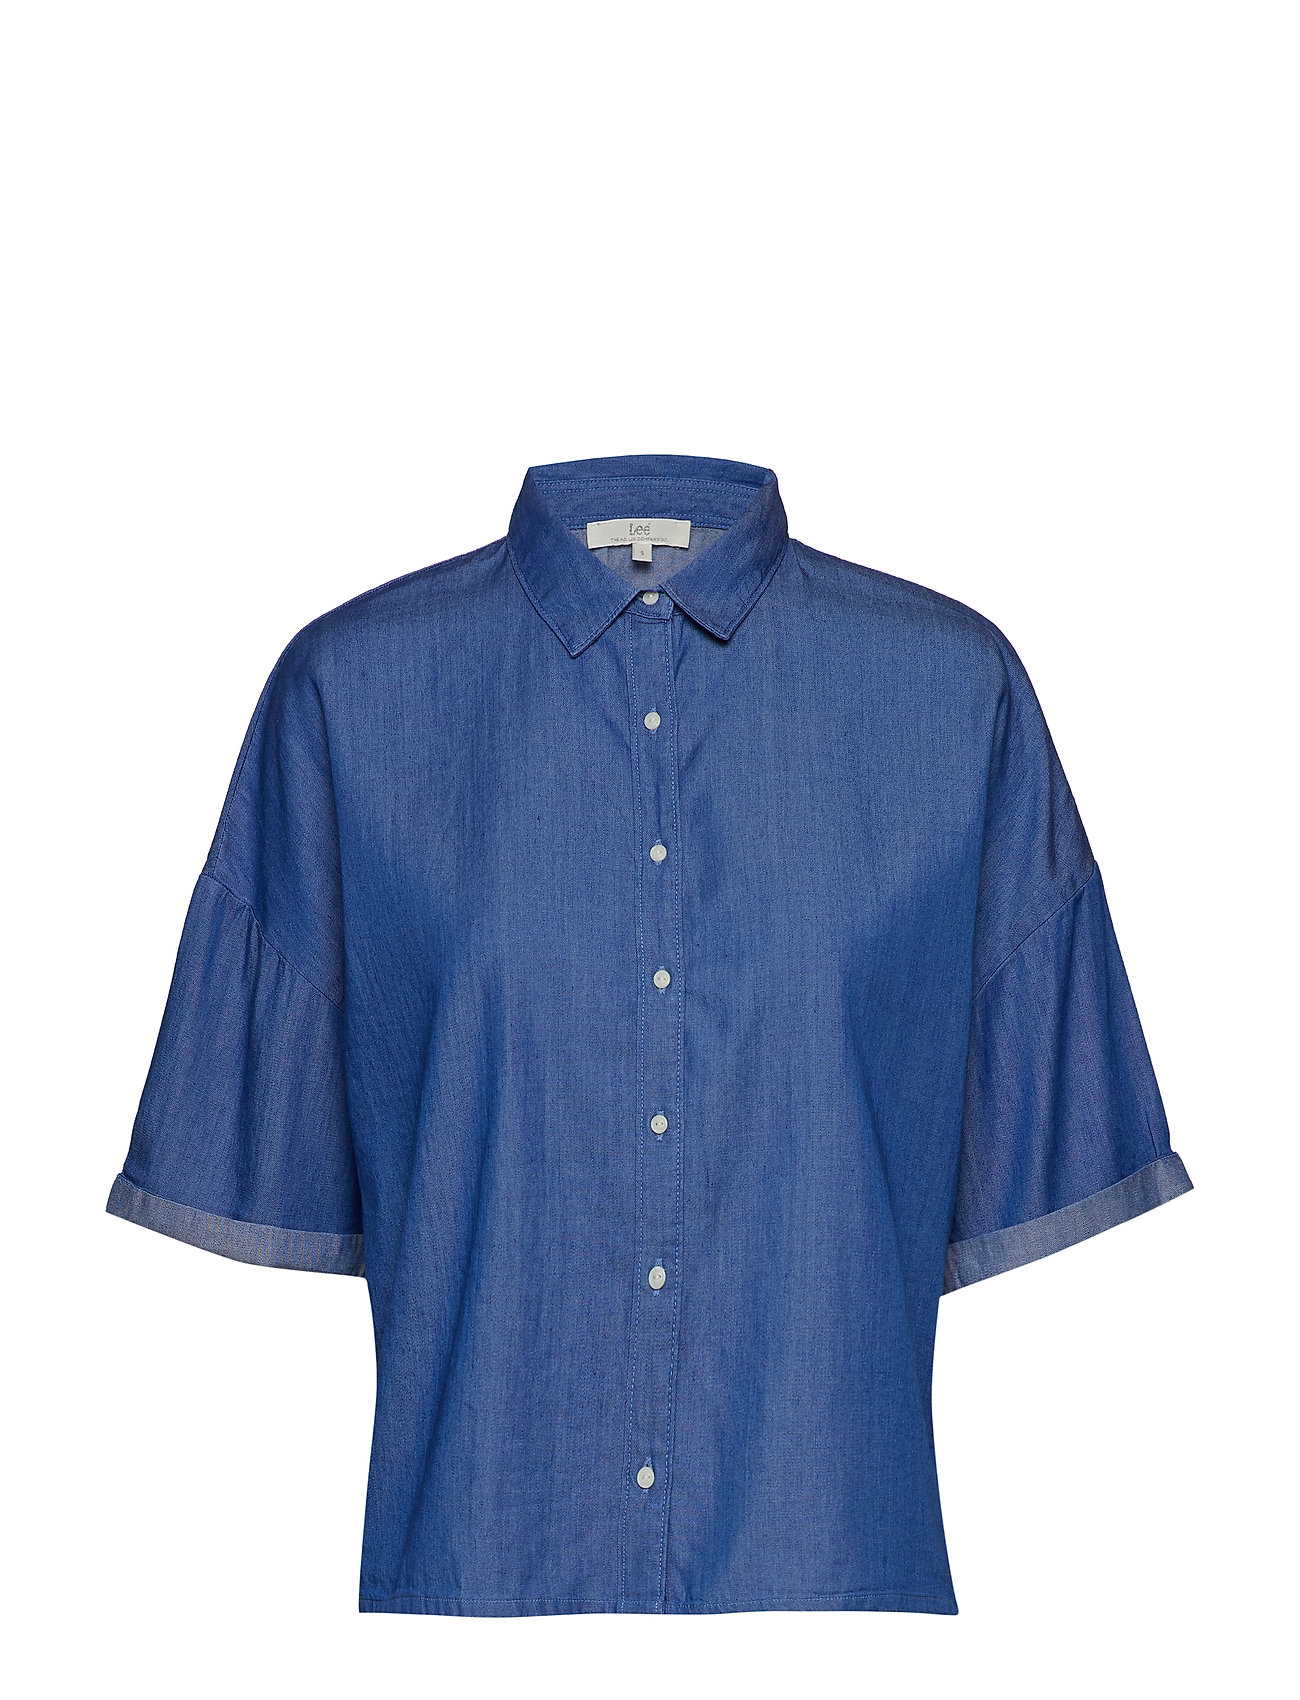 e3c9ace1f02036 Cropped Shirt (Dipped Blue) (48.68 €) - Lee Jeans - | Boozt.com